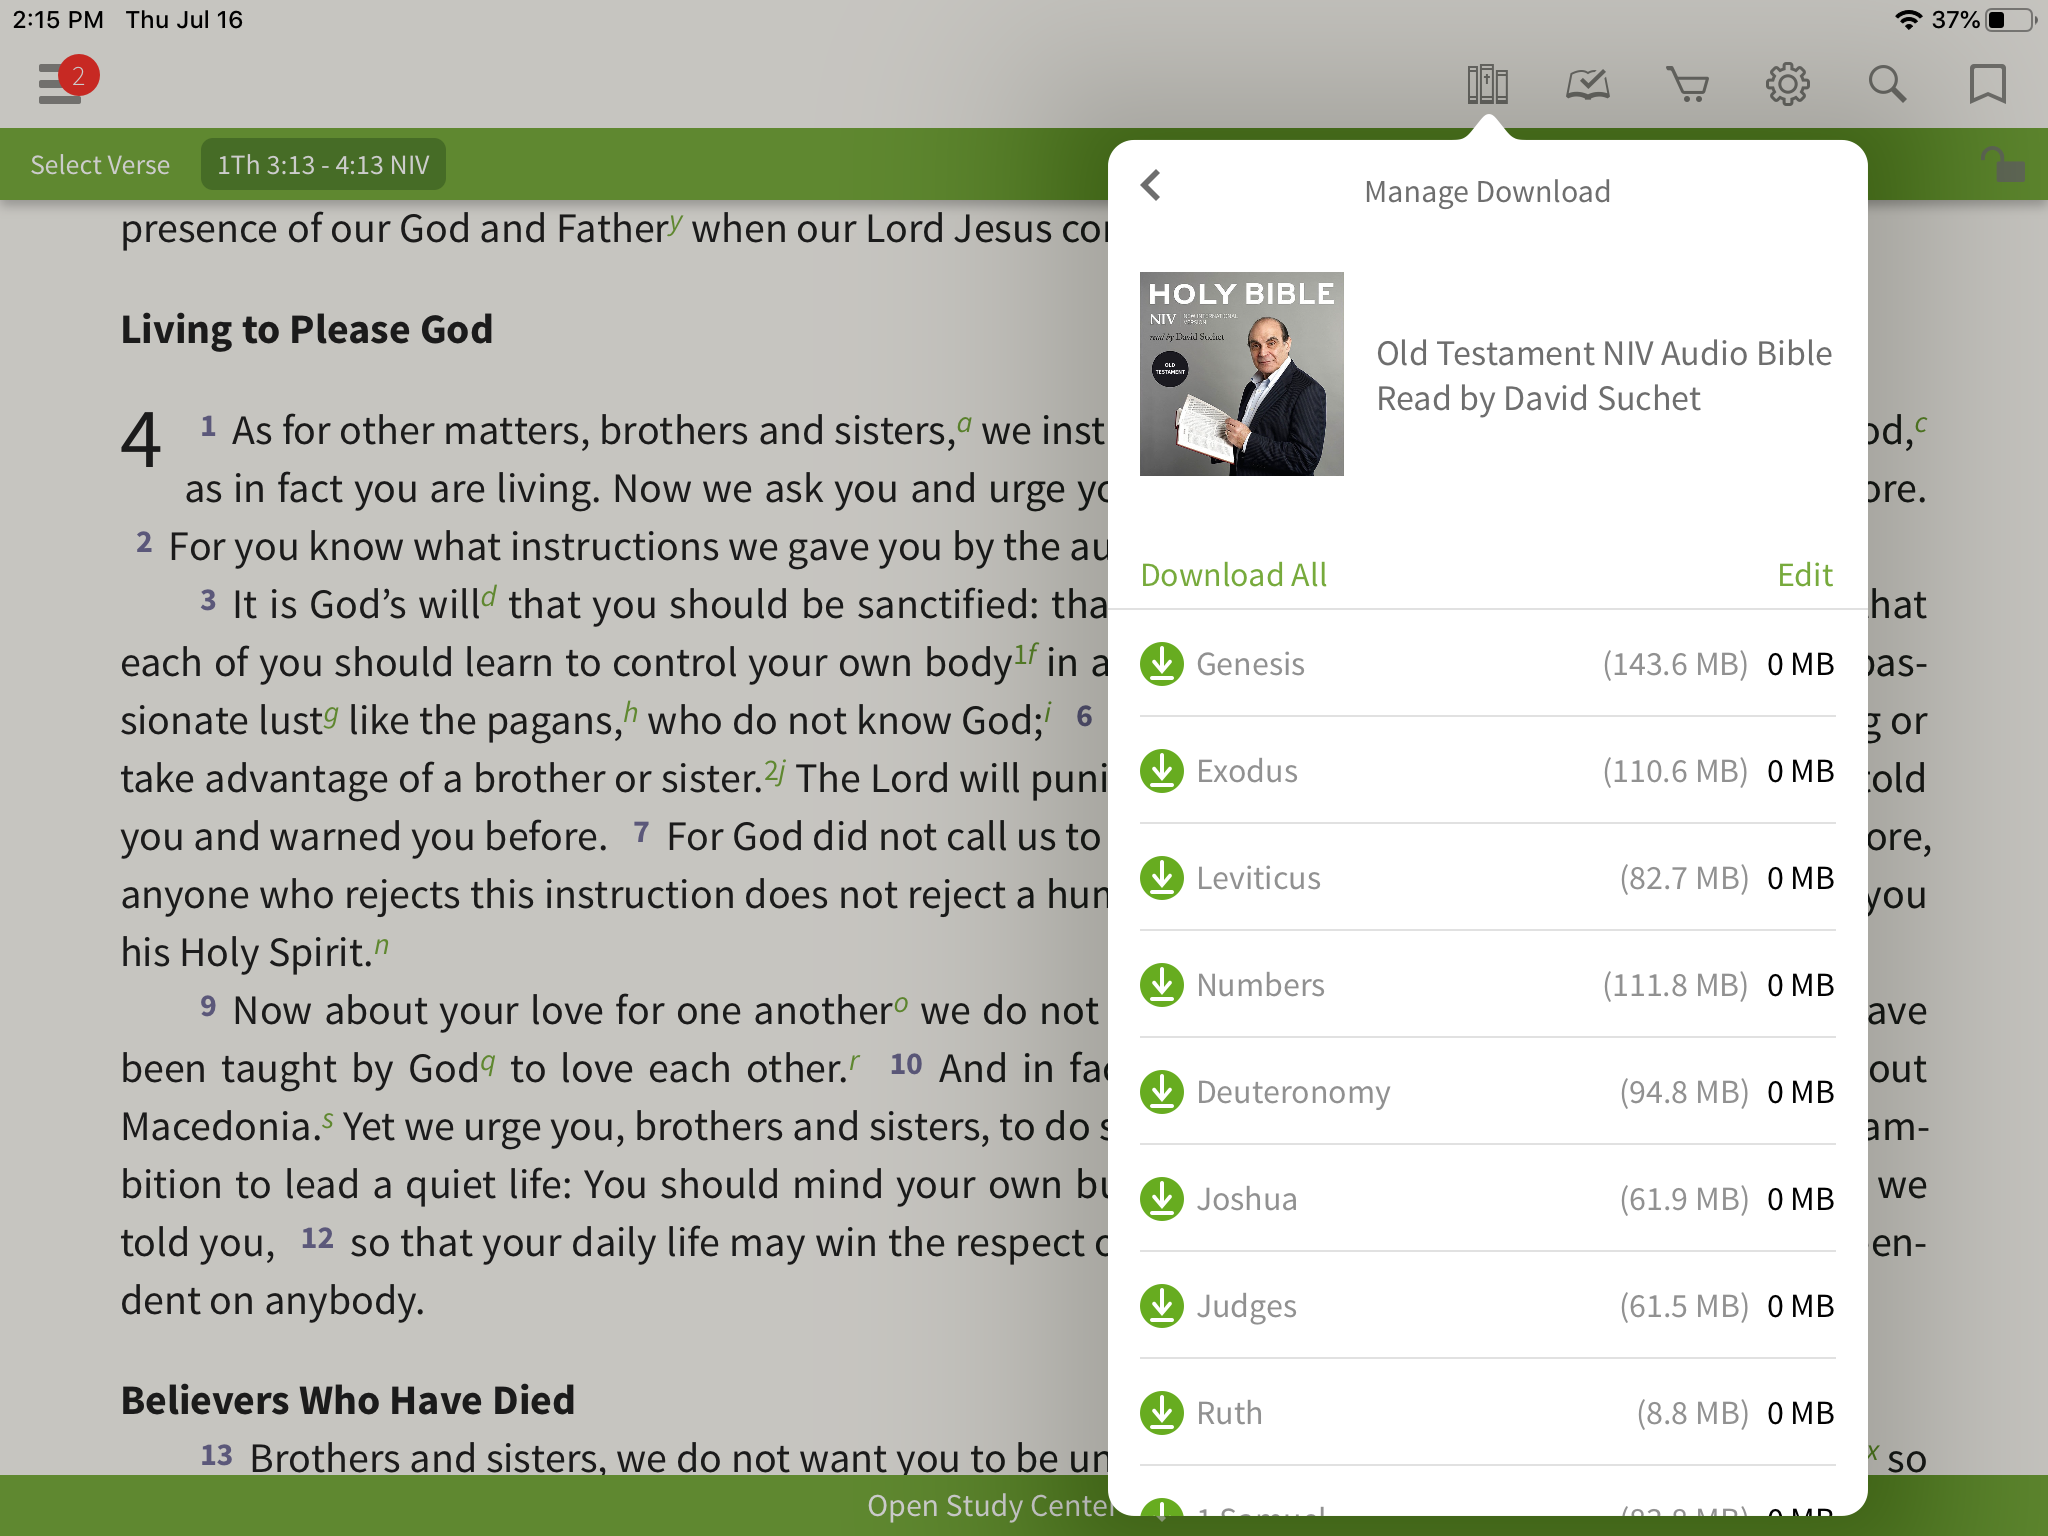 Downloading audio Bibles in the Olive Tree Bible App